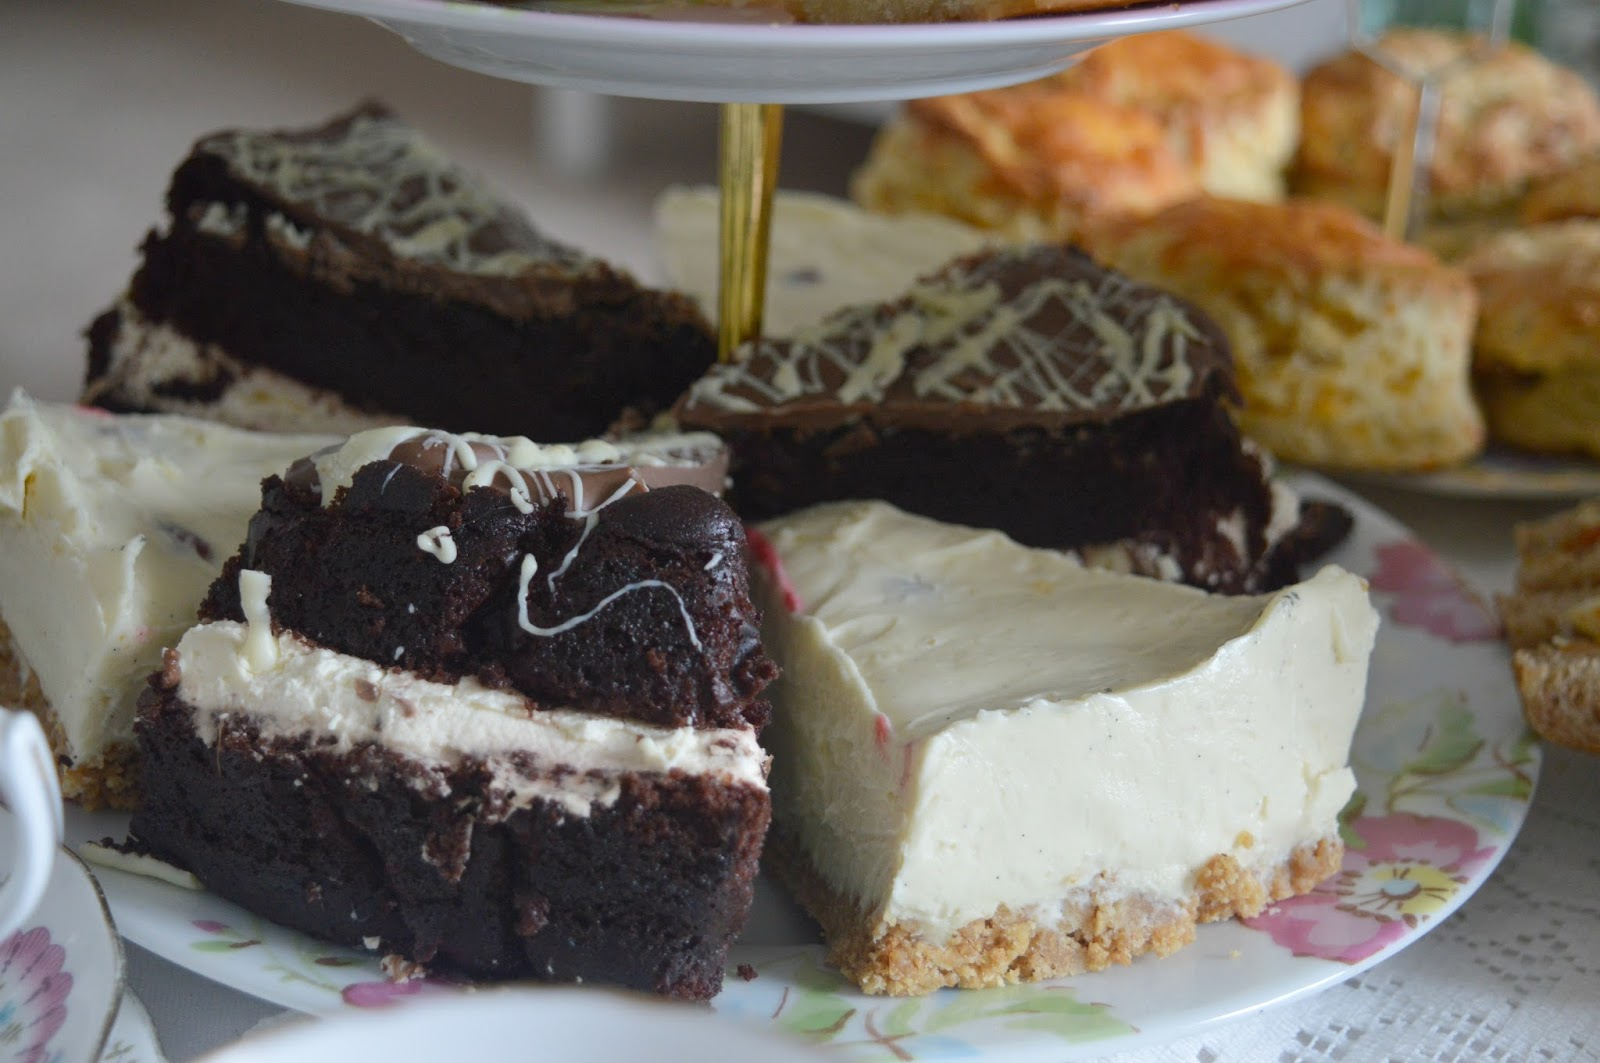 Mrs Dellow's Delights North East Afternoon Tea Delivery Service - Super Squidgy Chocolate Cake